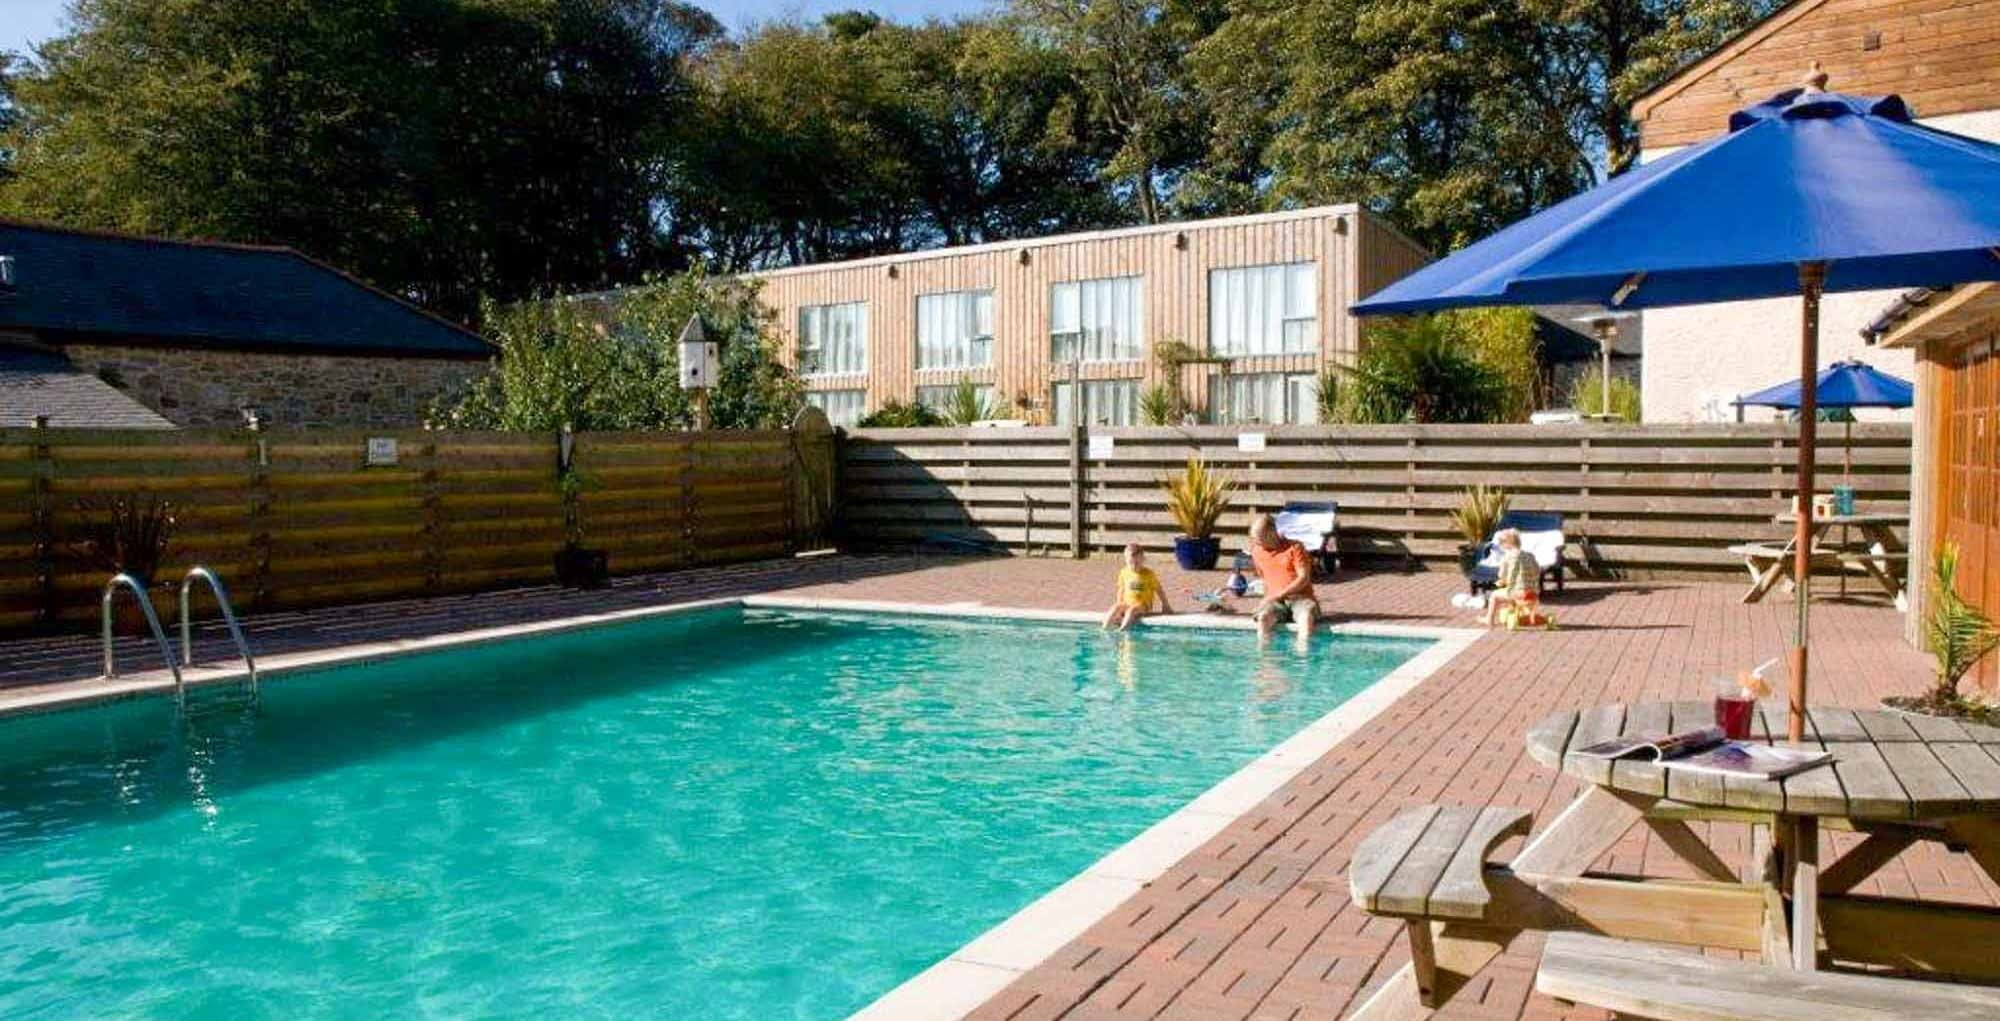 Outdoor home pool  Cornwall Cottages with Swimming Pool Holiday Homes Apartments with Pool